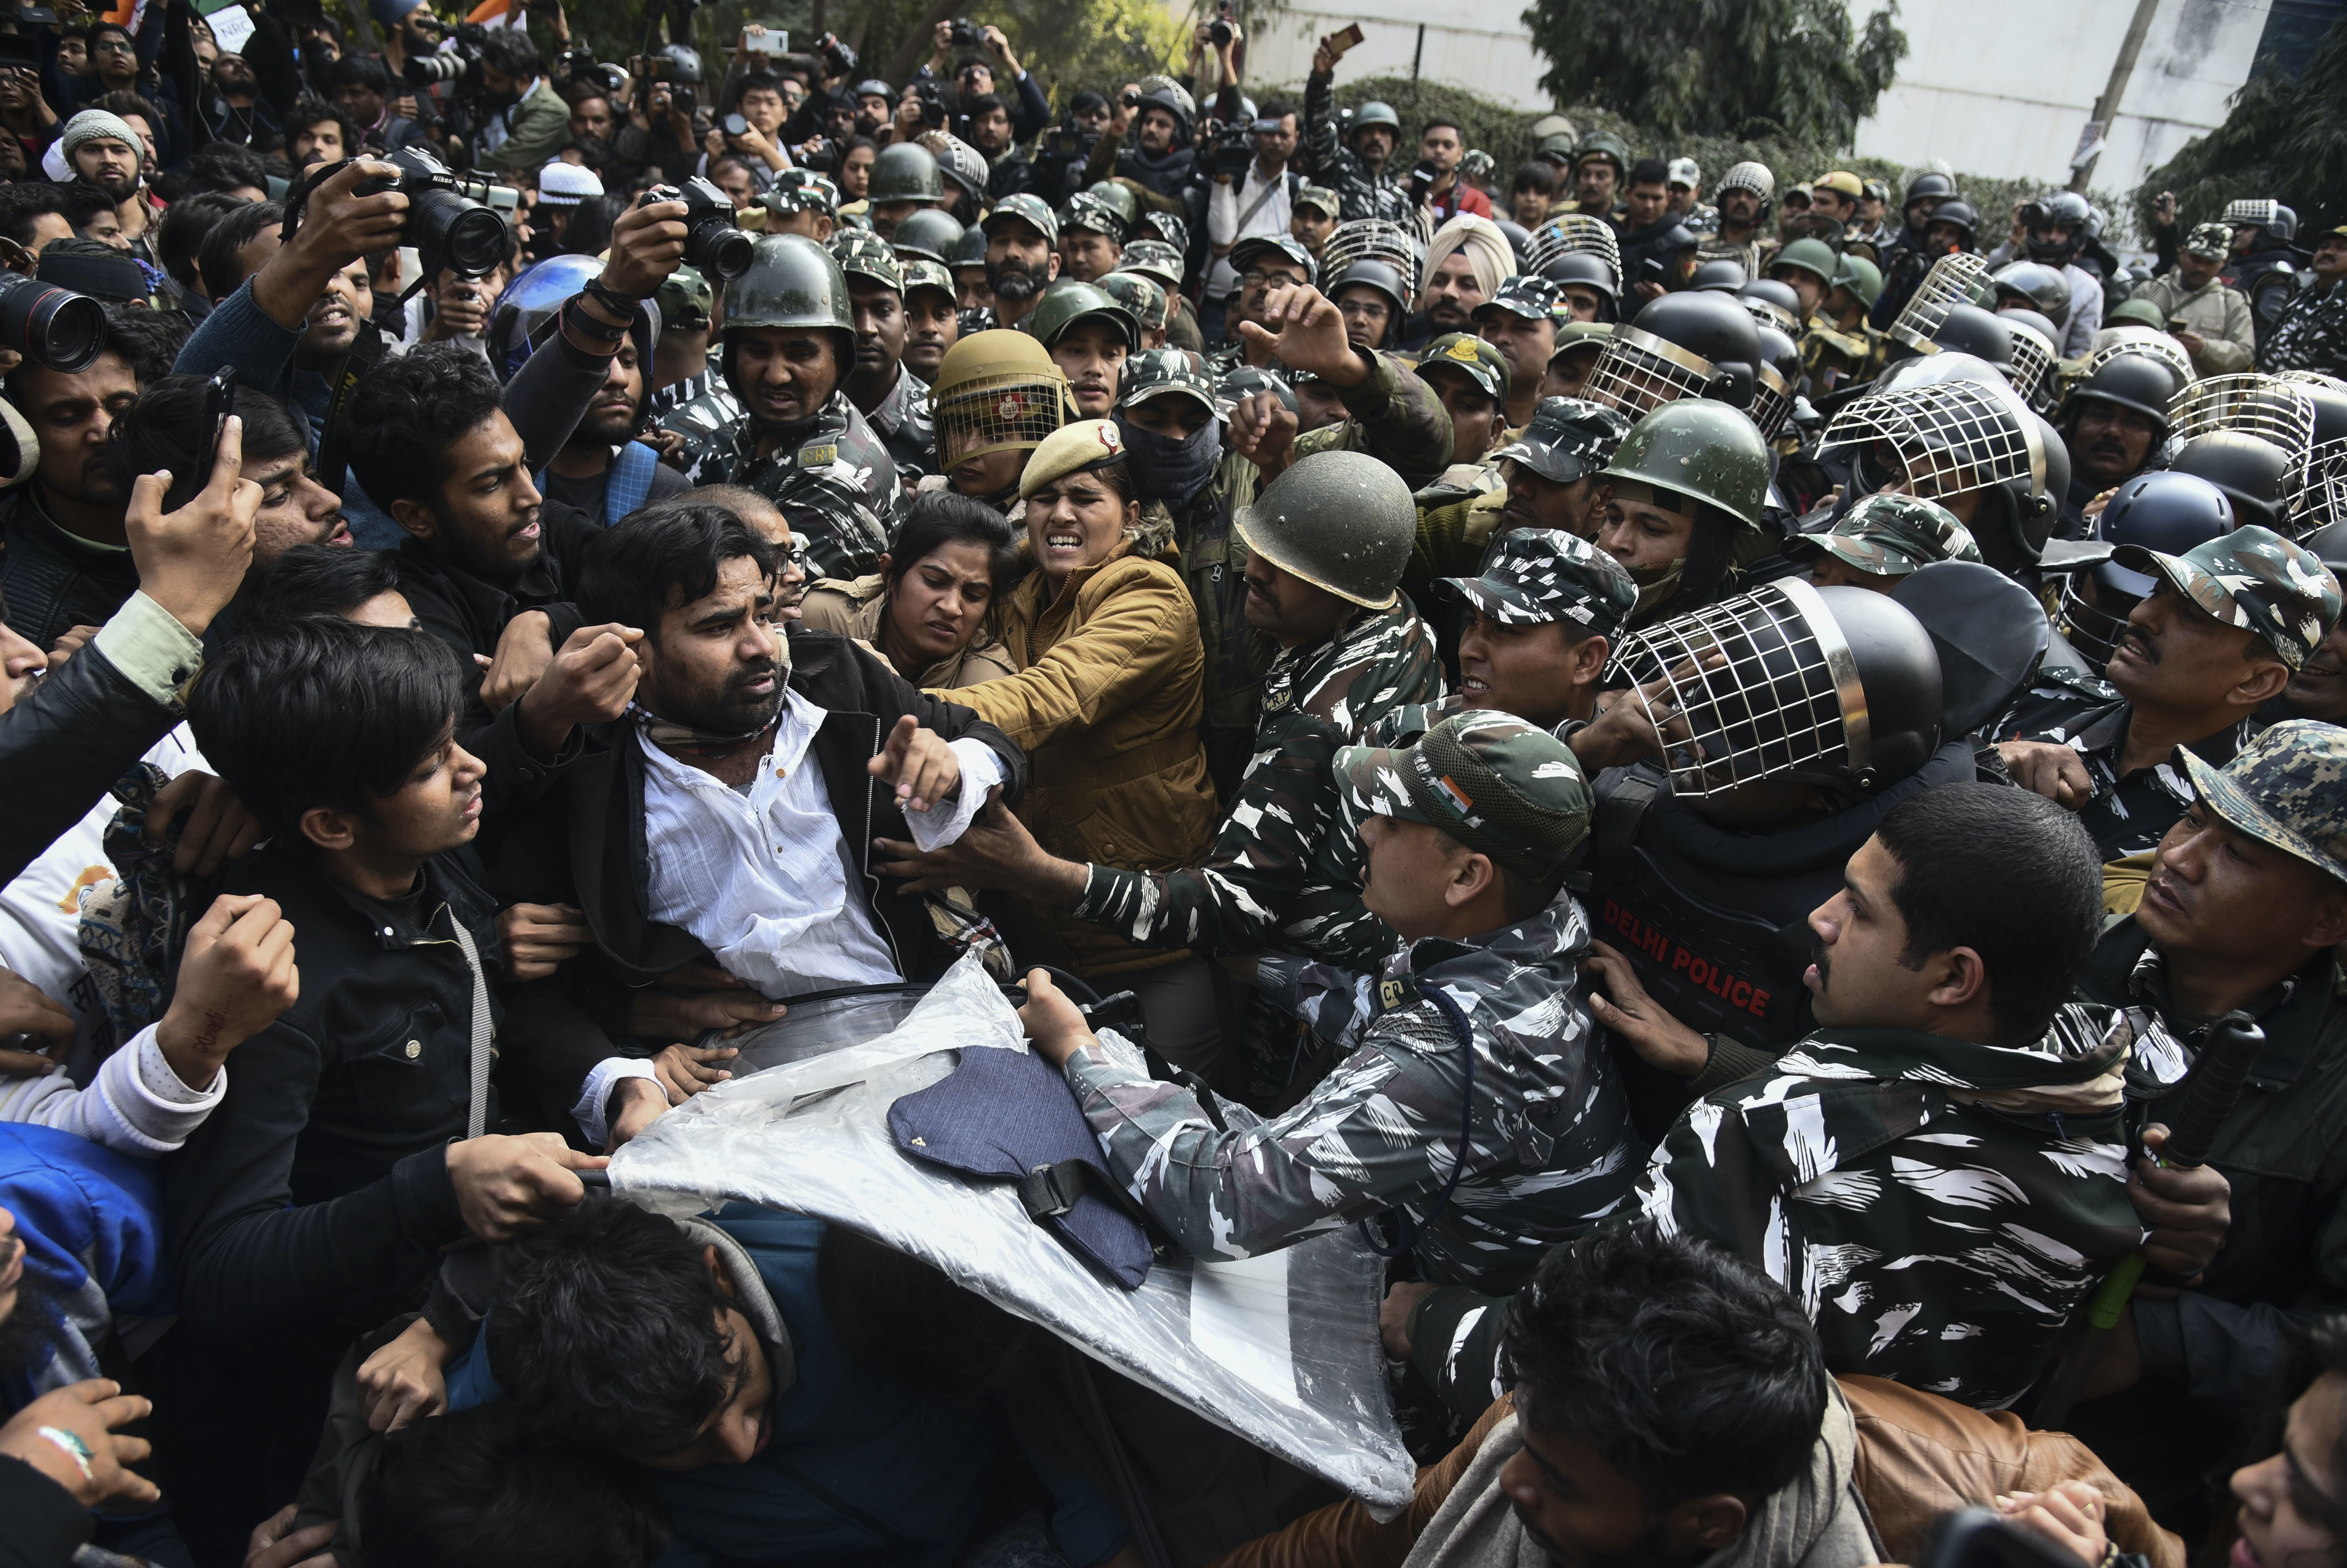 Students and police face off during a protest against a new citizenship law outside the Jamia Millia Islamia university in New Delhi, India, Monday, Feb.10, 2020. Over the past two months India has been witnessing continuing protests against a new citizenship law that excludes Muslims. (AP Photo)